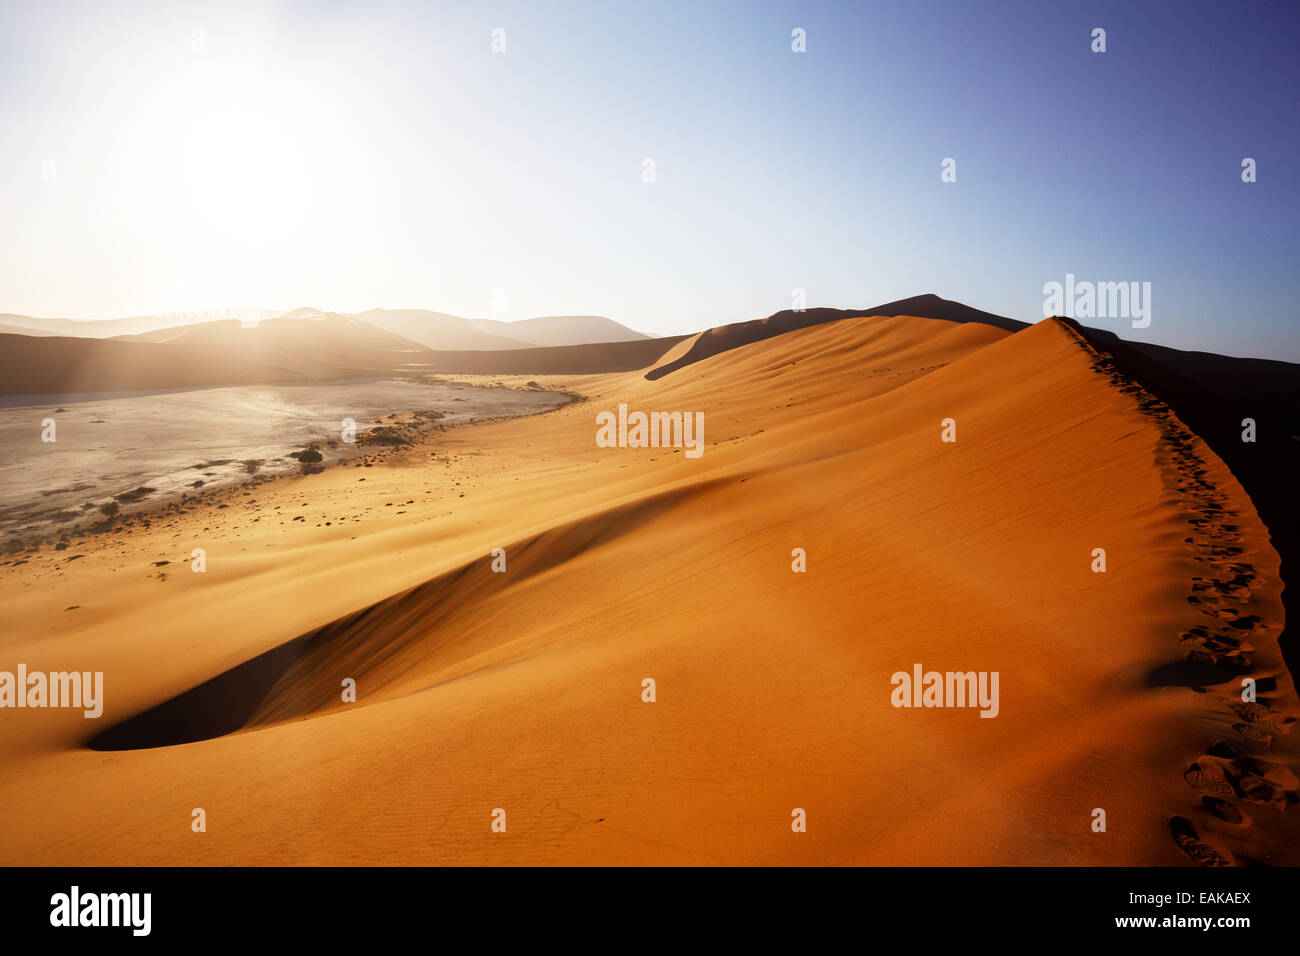 beautiful sunrise landscape of hidden Dead Vlei in Namib desert with blue sky, this is best place in Namibia - Stock Image